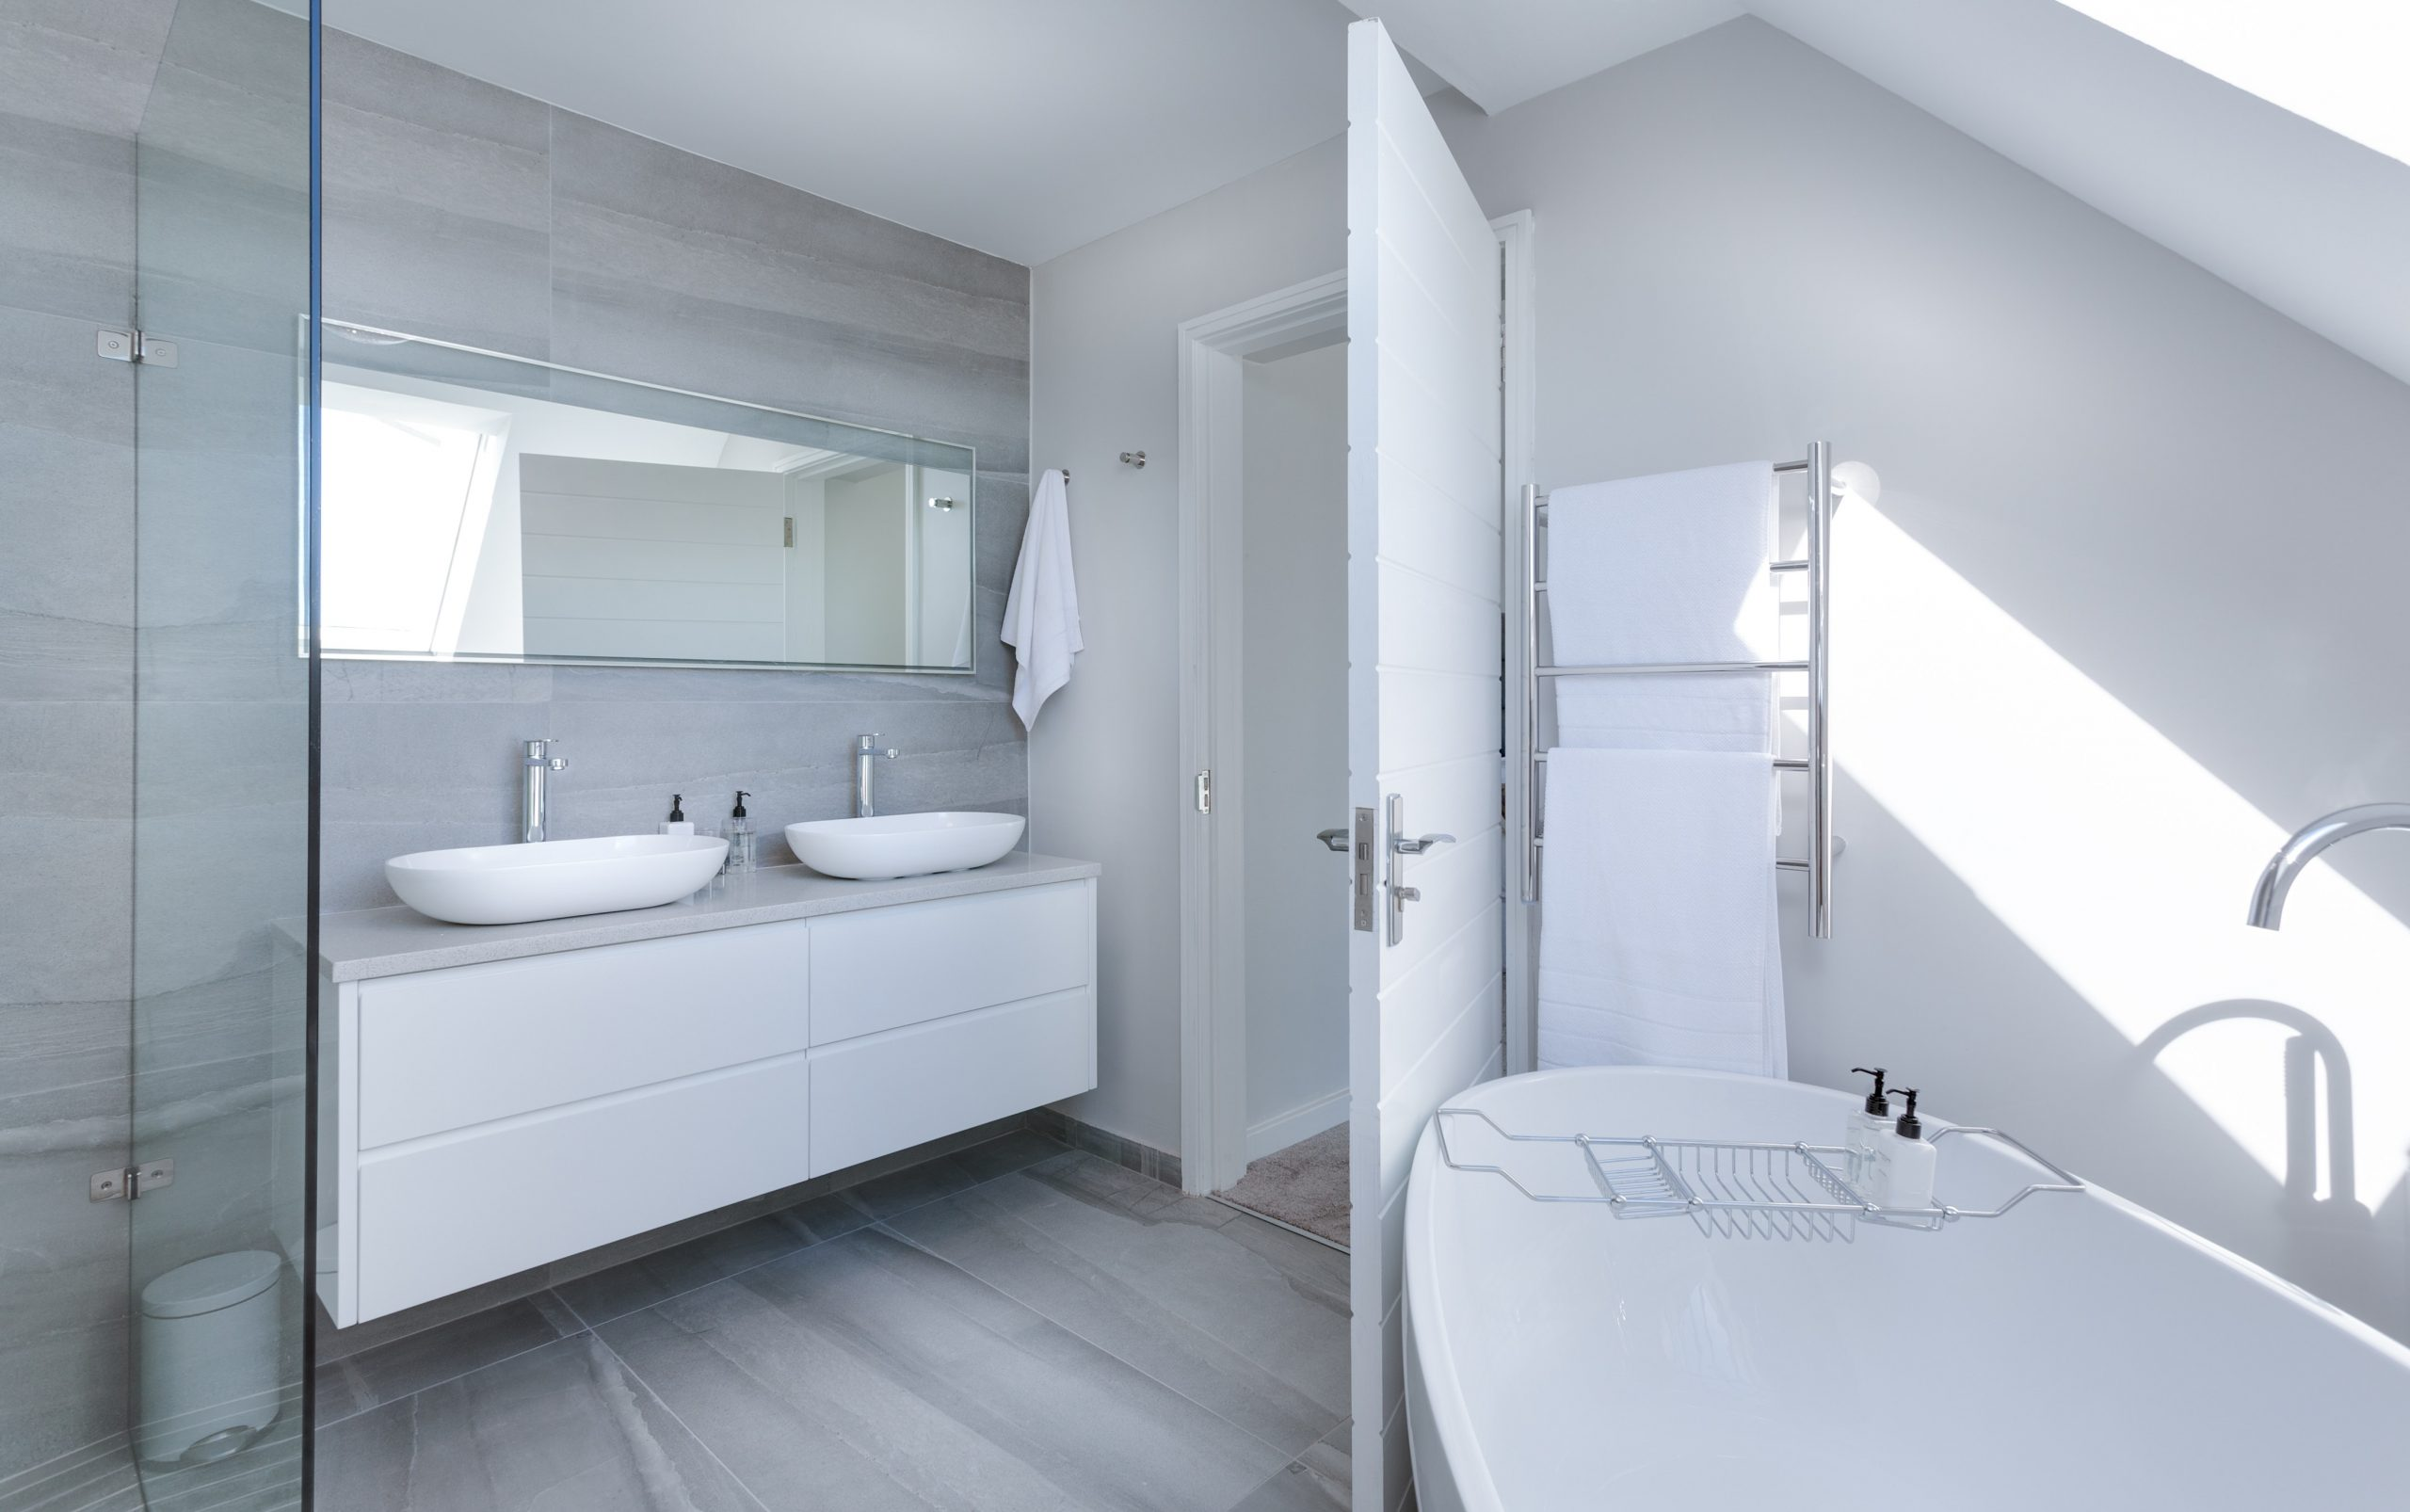 How To Renovate Your Own Bathroom Without Any Hiccups